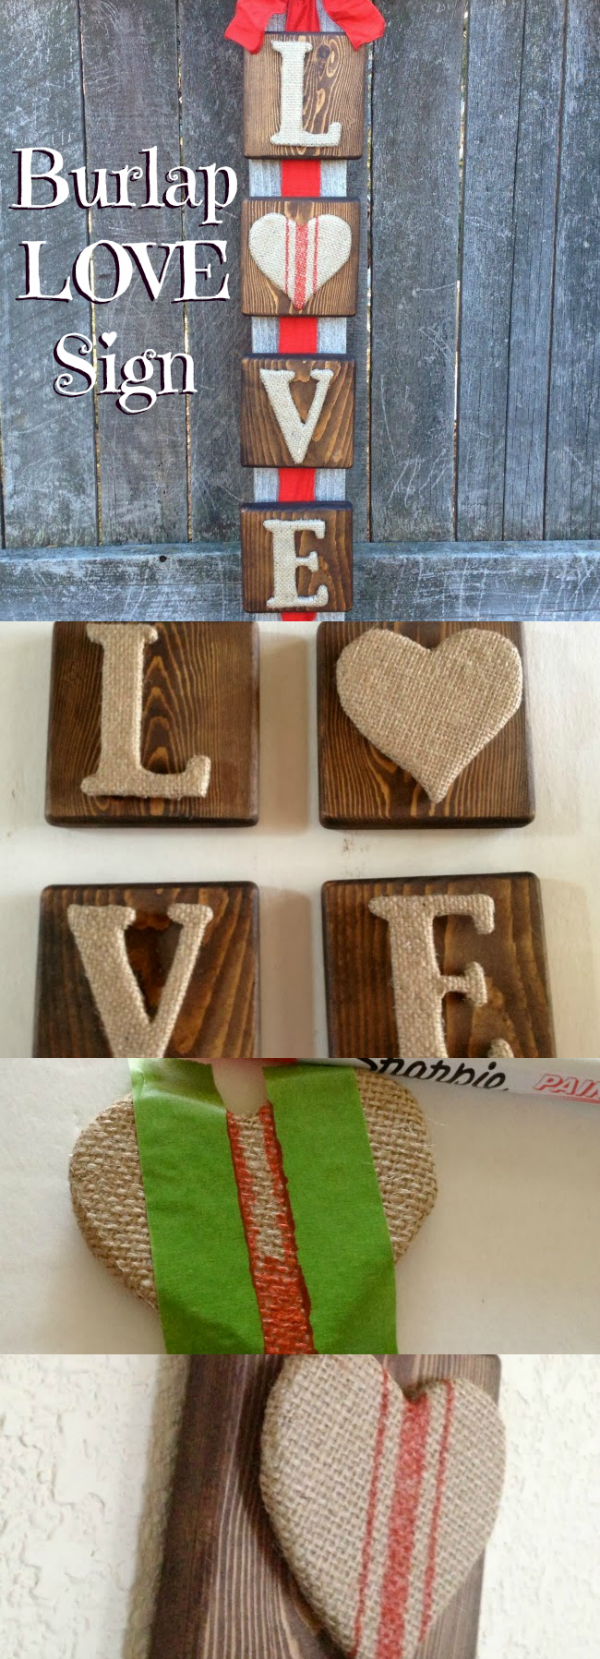 Burlap Letter Wooden Sign For Valentine\u0027s Day - Oh My Creative